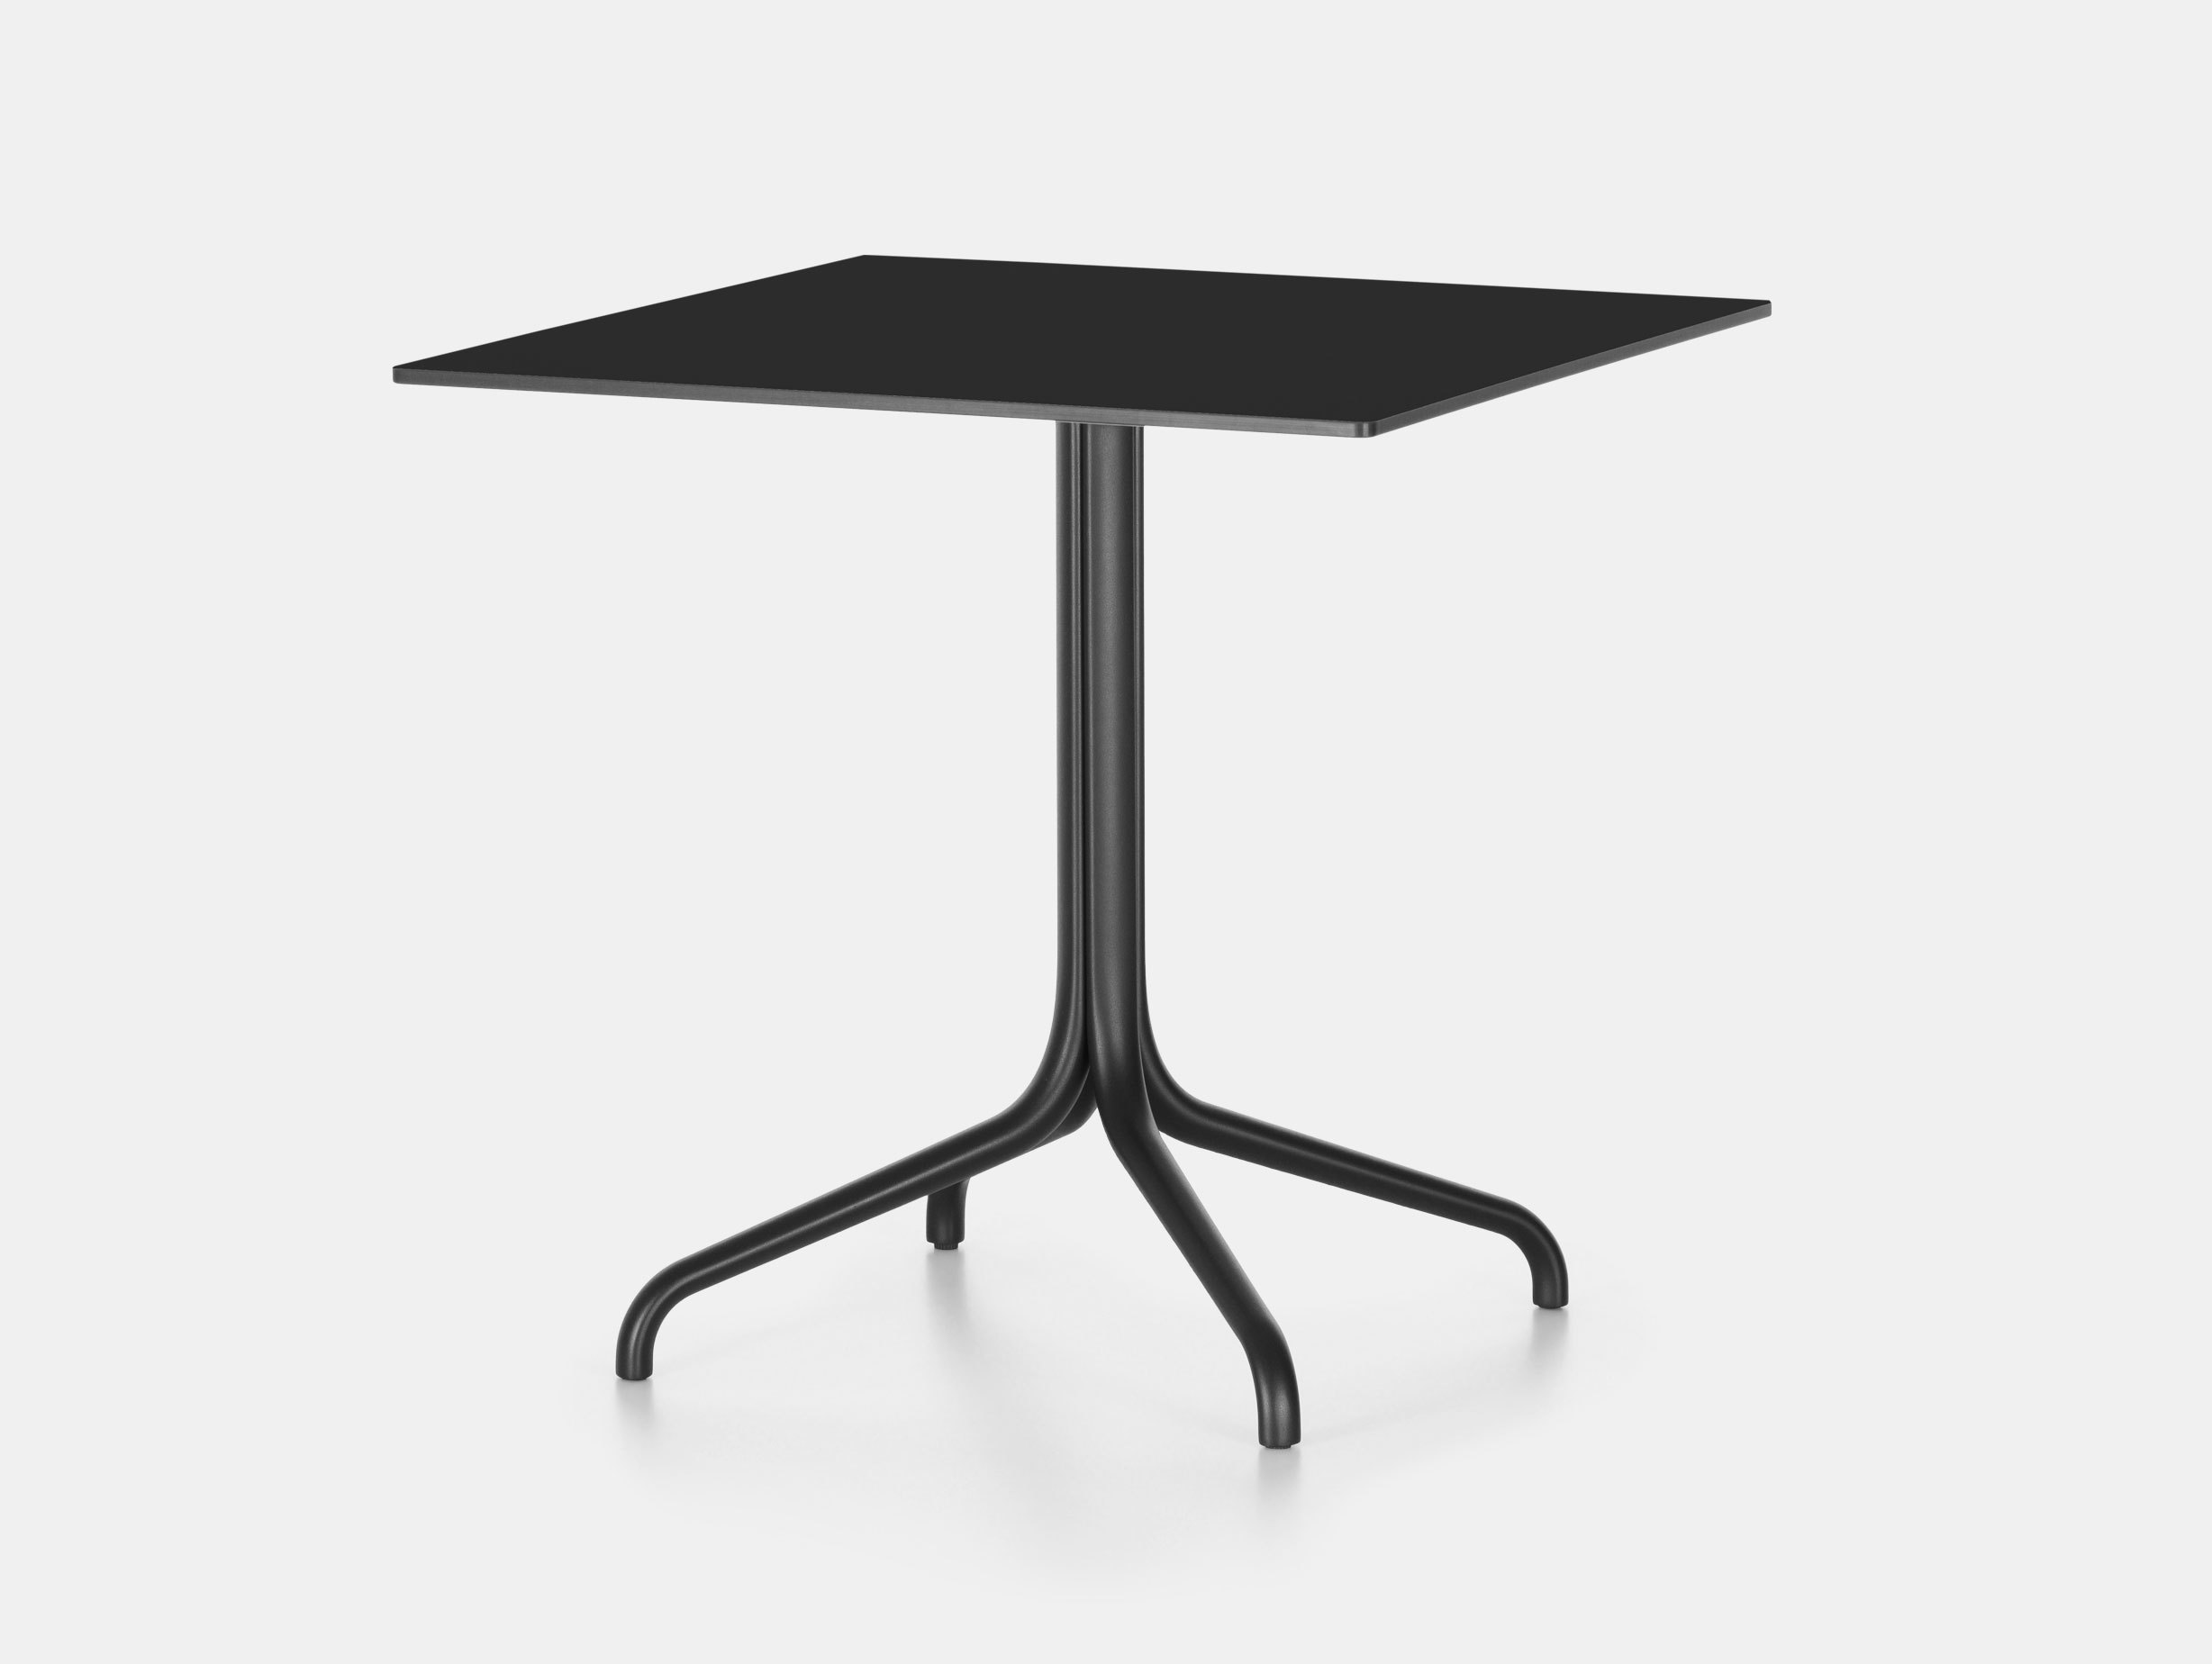 Vitra Belleville Outdoor Table Square Black Ronan Erwan Bouroullec